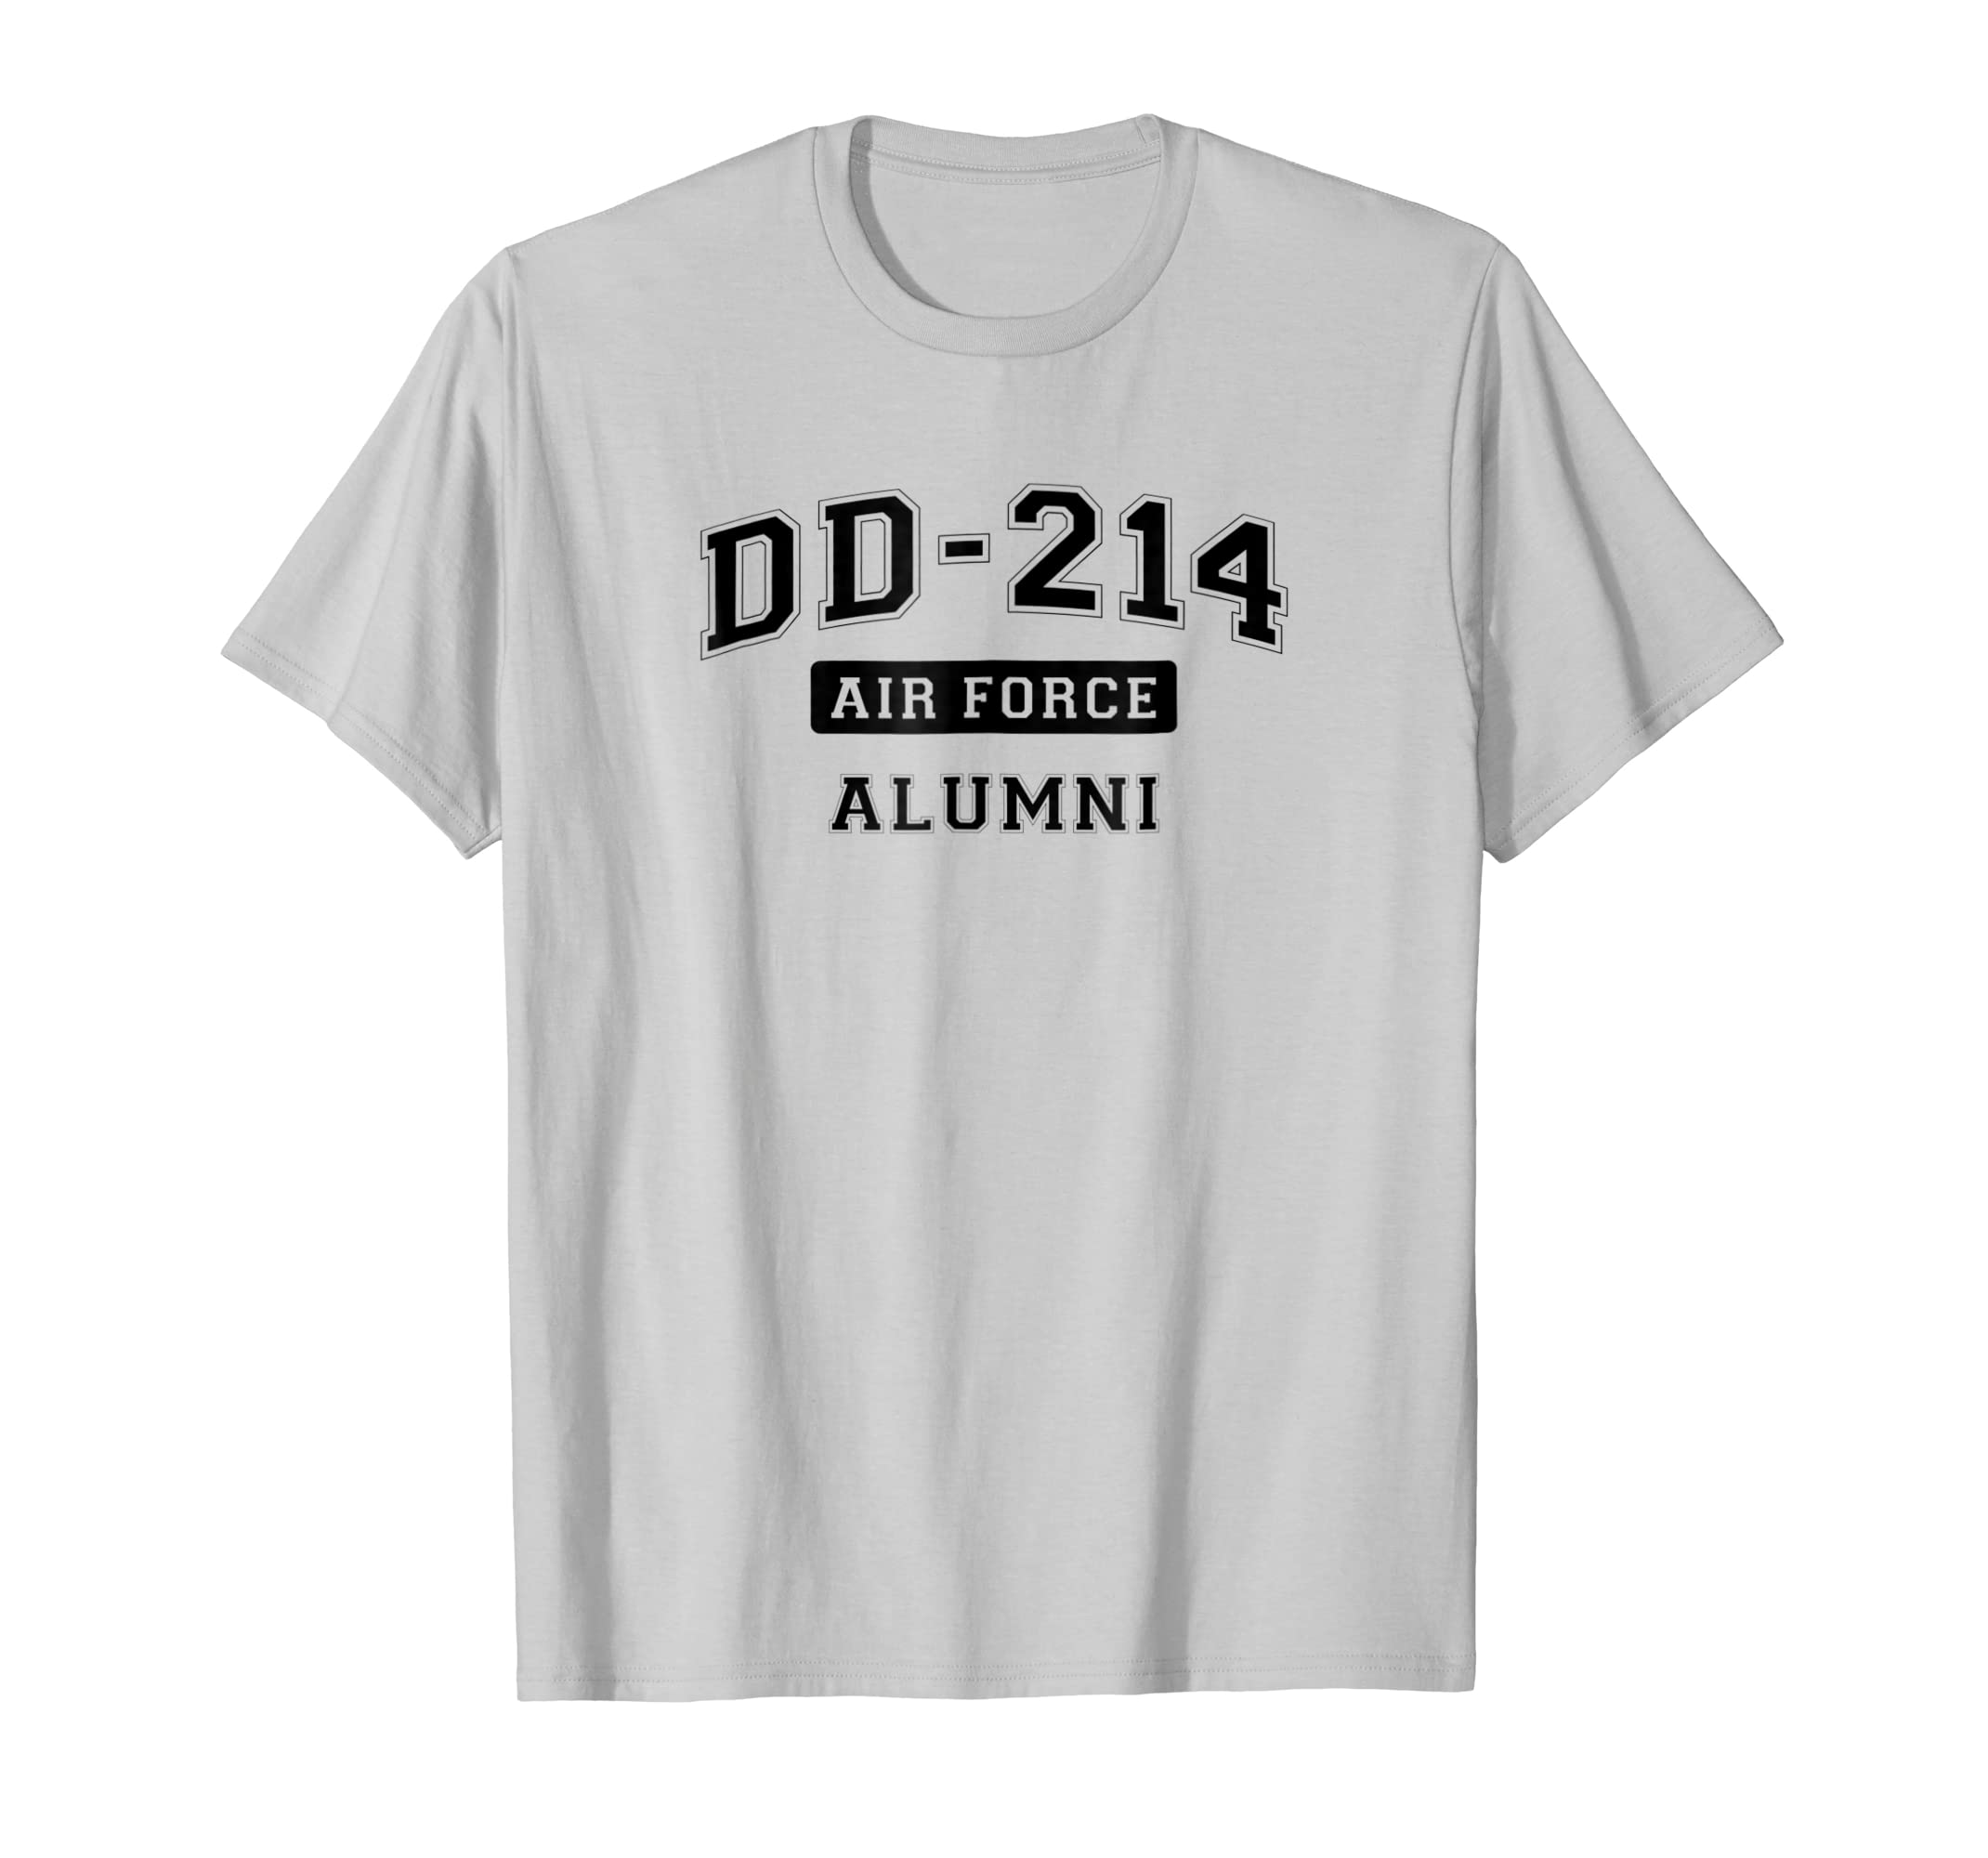 11b19d14664 Amazon.com  DD-214 USAF Alumni T-Shirt  Clothing